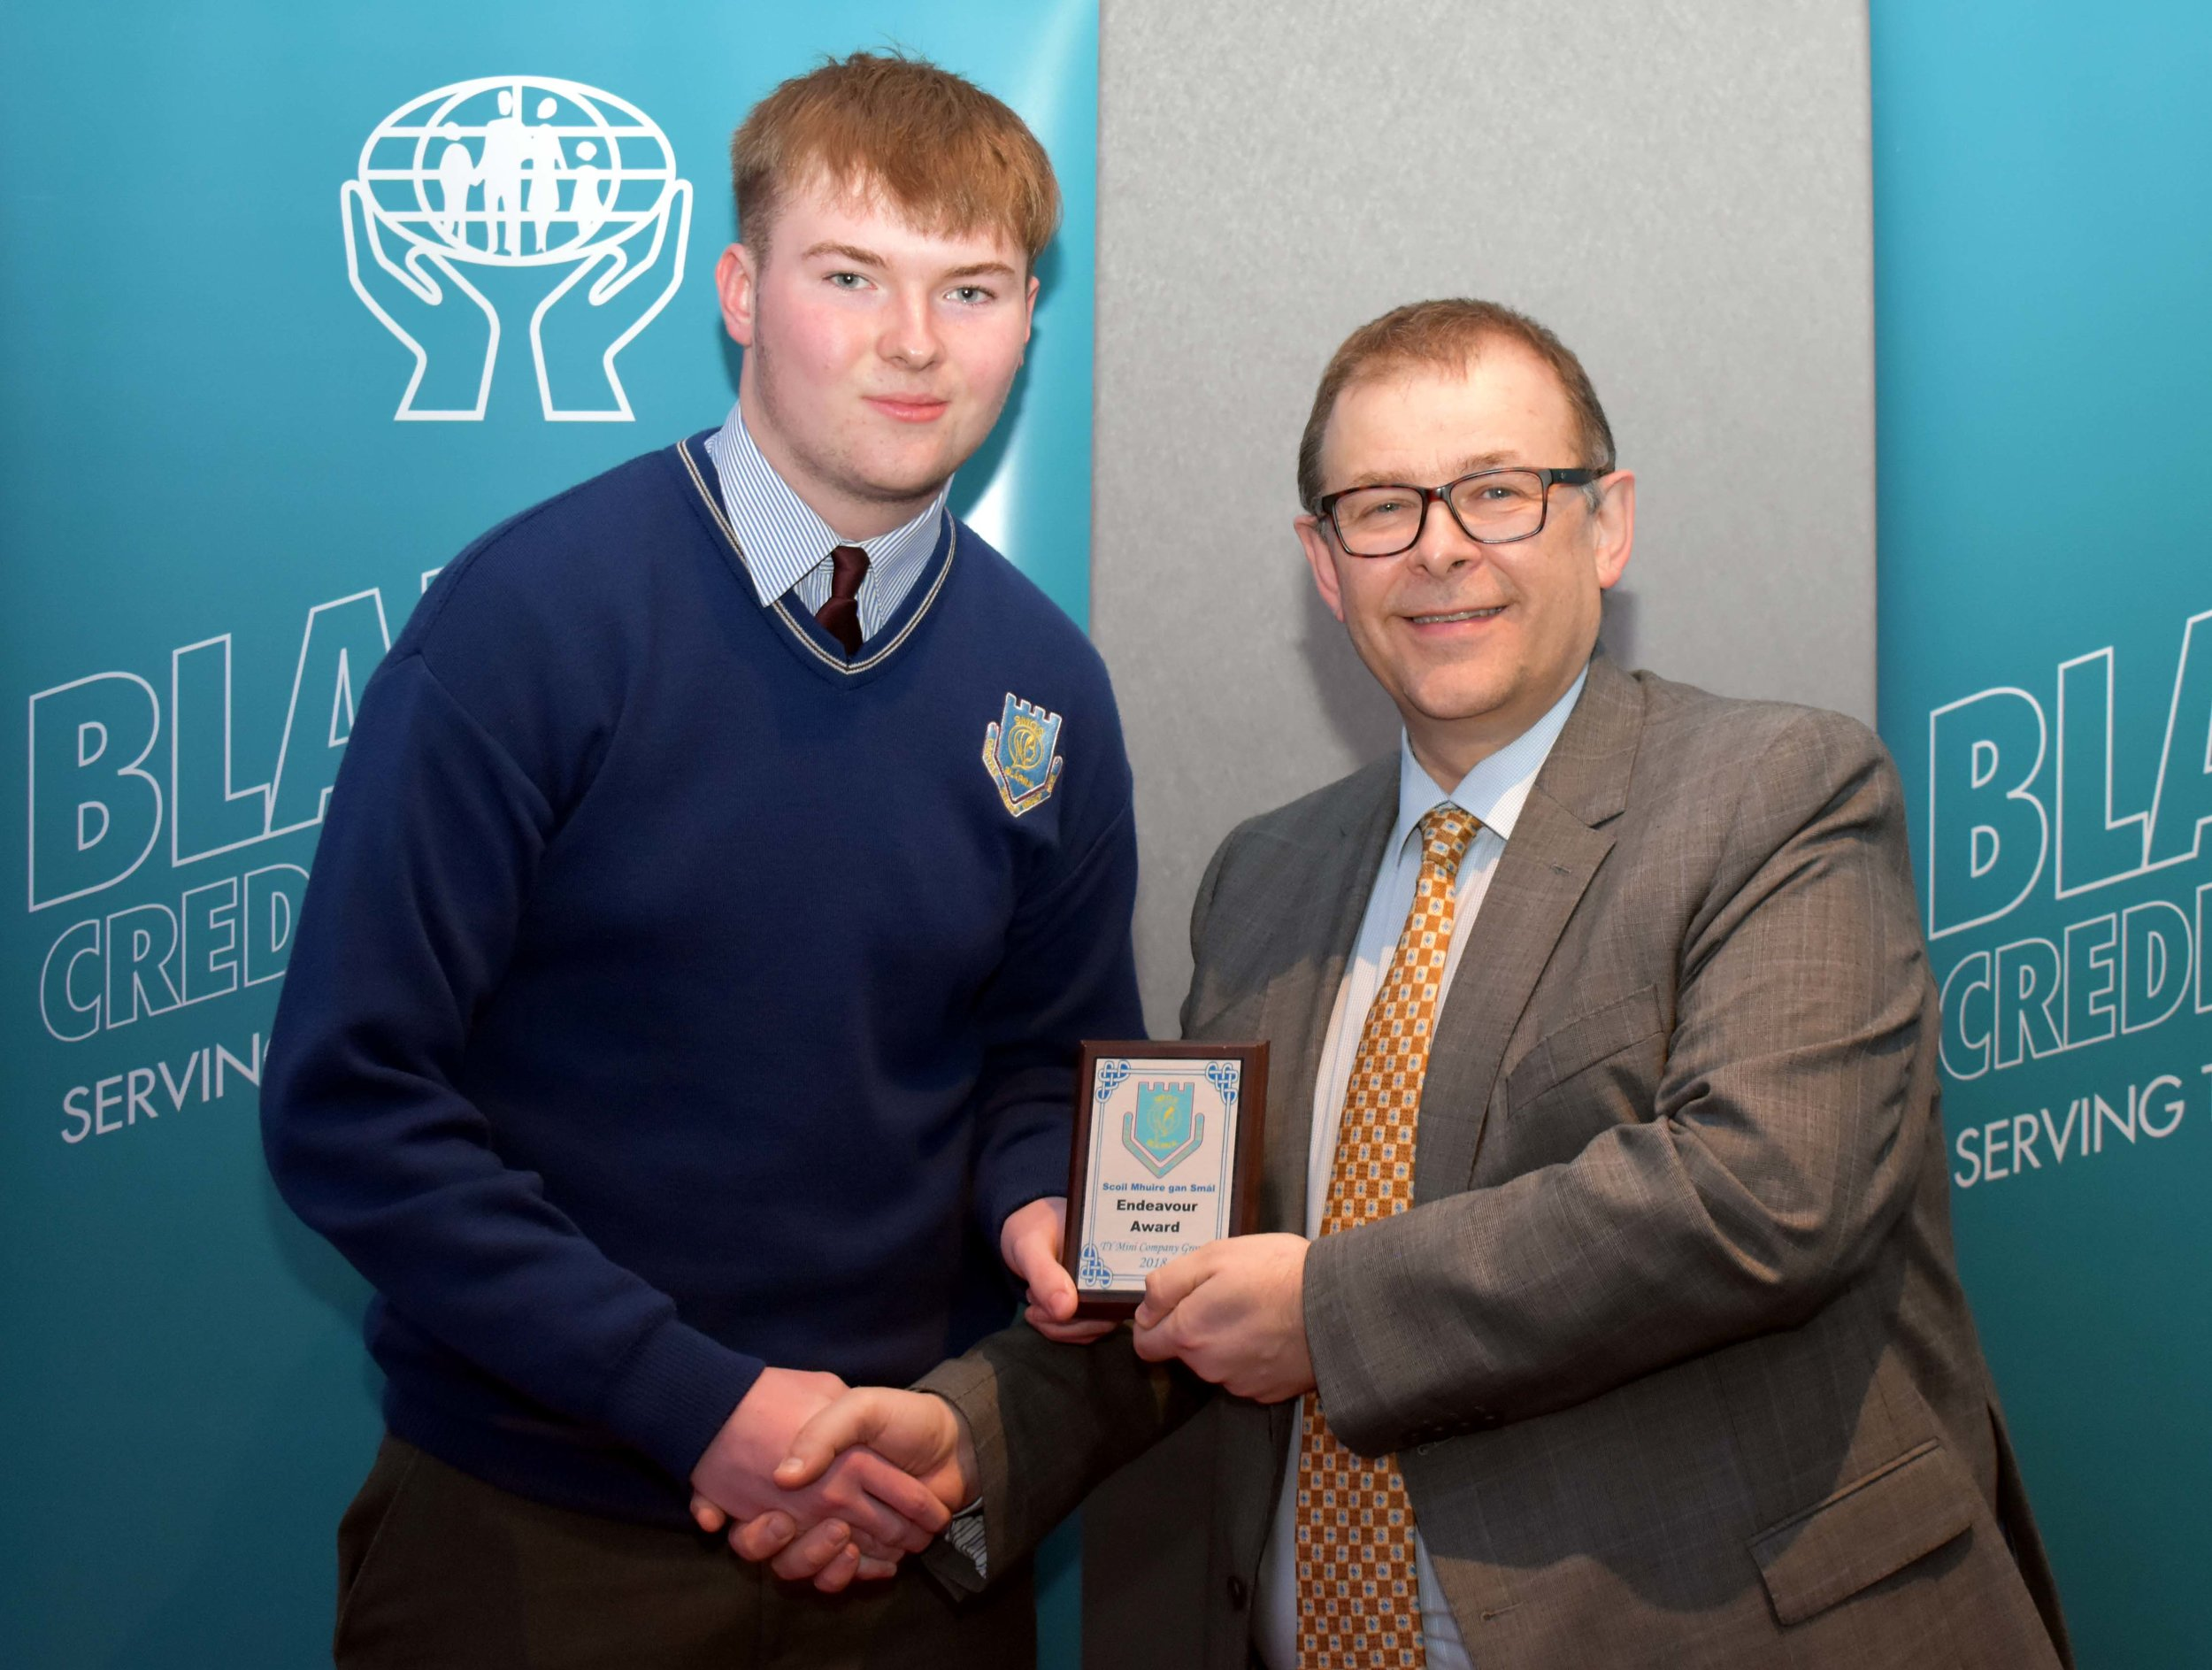 TY Mini Company group 2017/18 were the receipents of an endeavour award for organising a very successful charity walk fundraiser for the Surgeon Noonan Project. Jack Crotty accepting the award on behalf of the group. (Pictured with Mr. Mark McGloughlin - BOM and Blarney Credit Union)